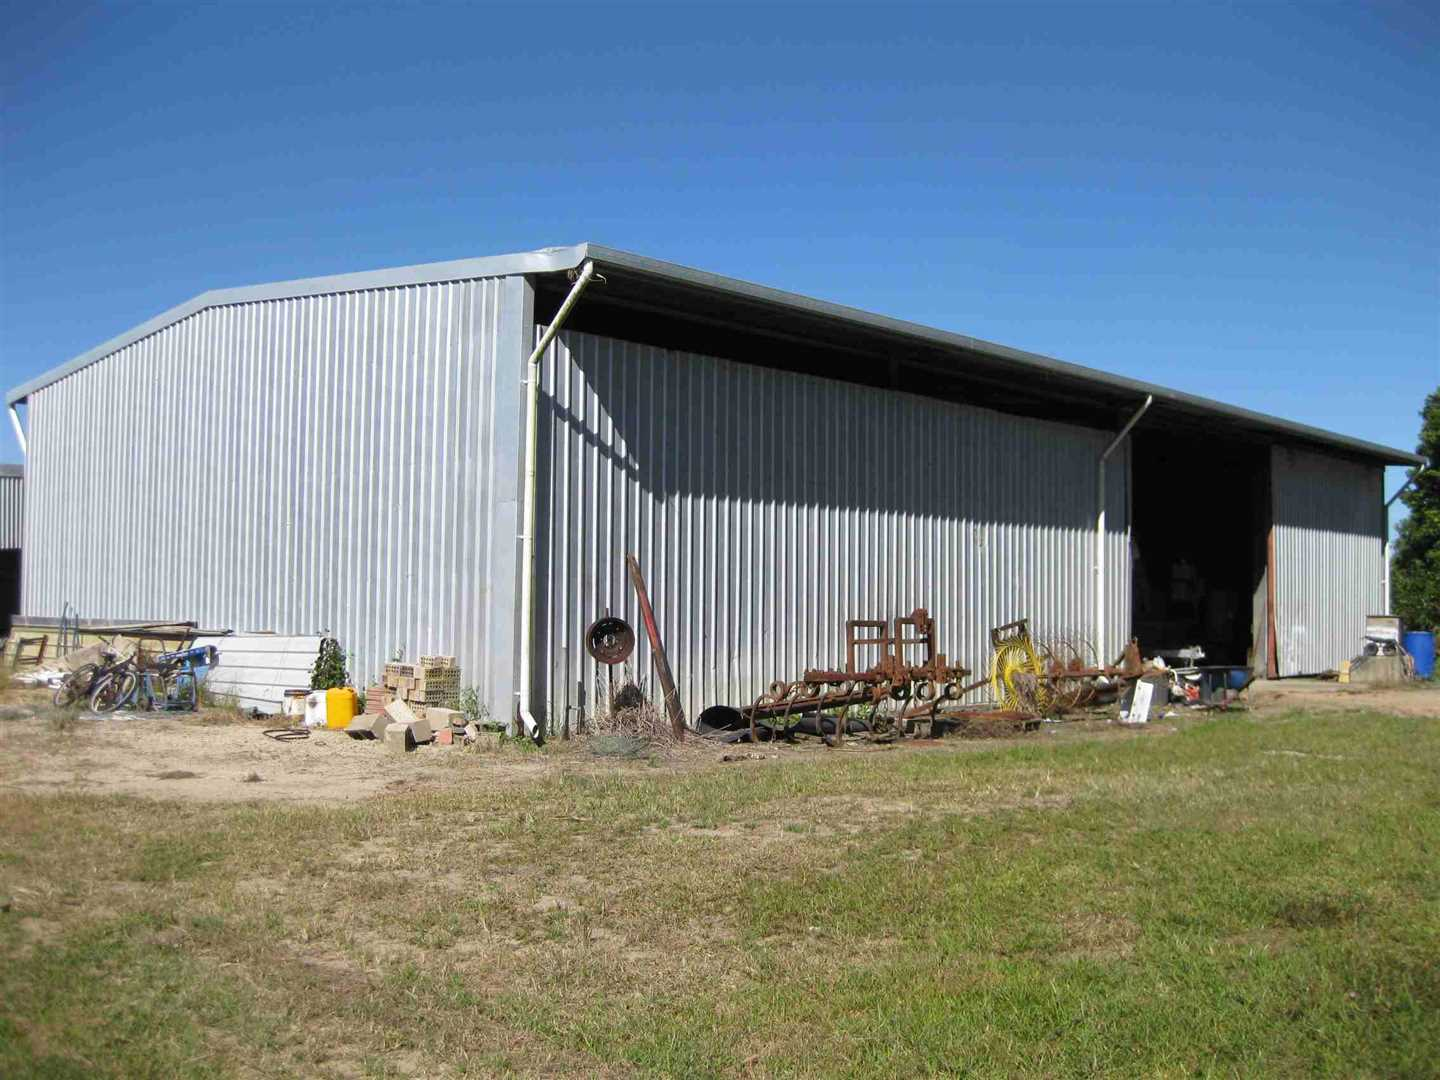 View of part of large farm shed, photo 4